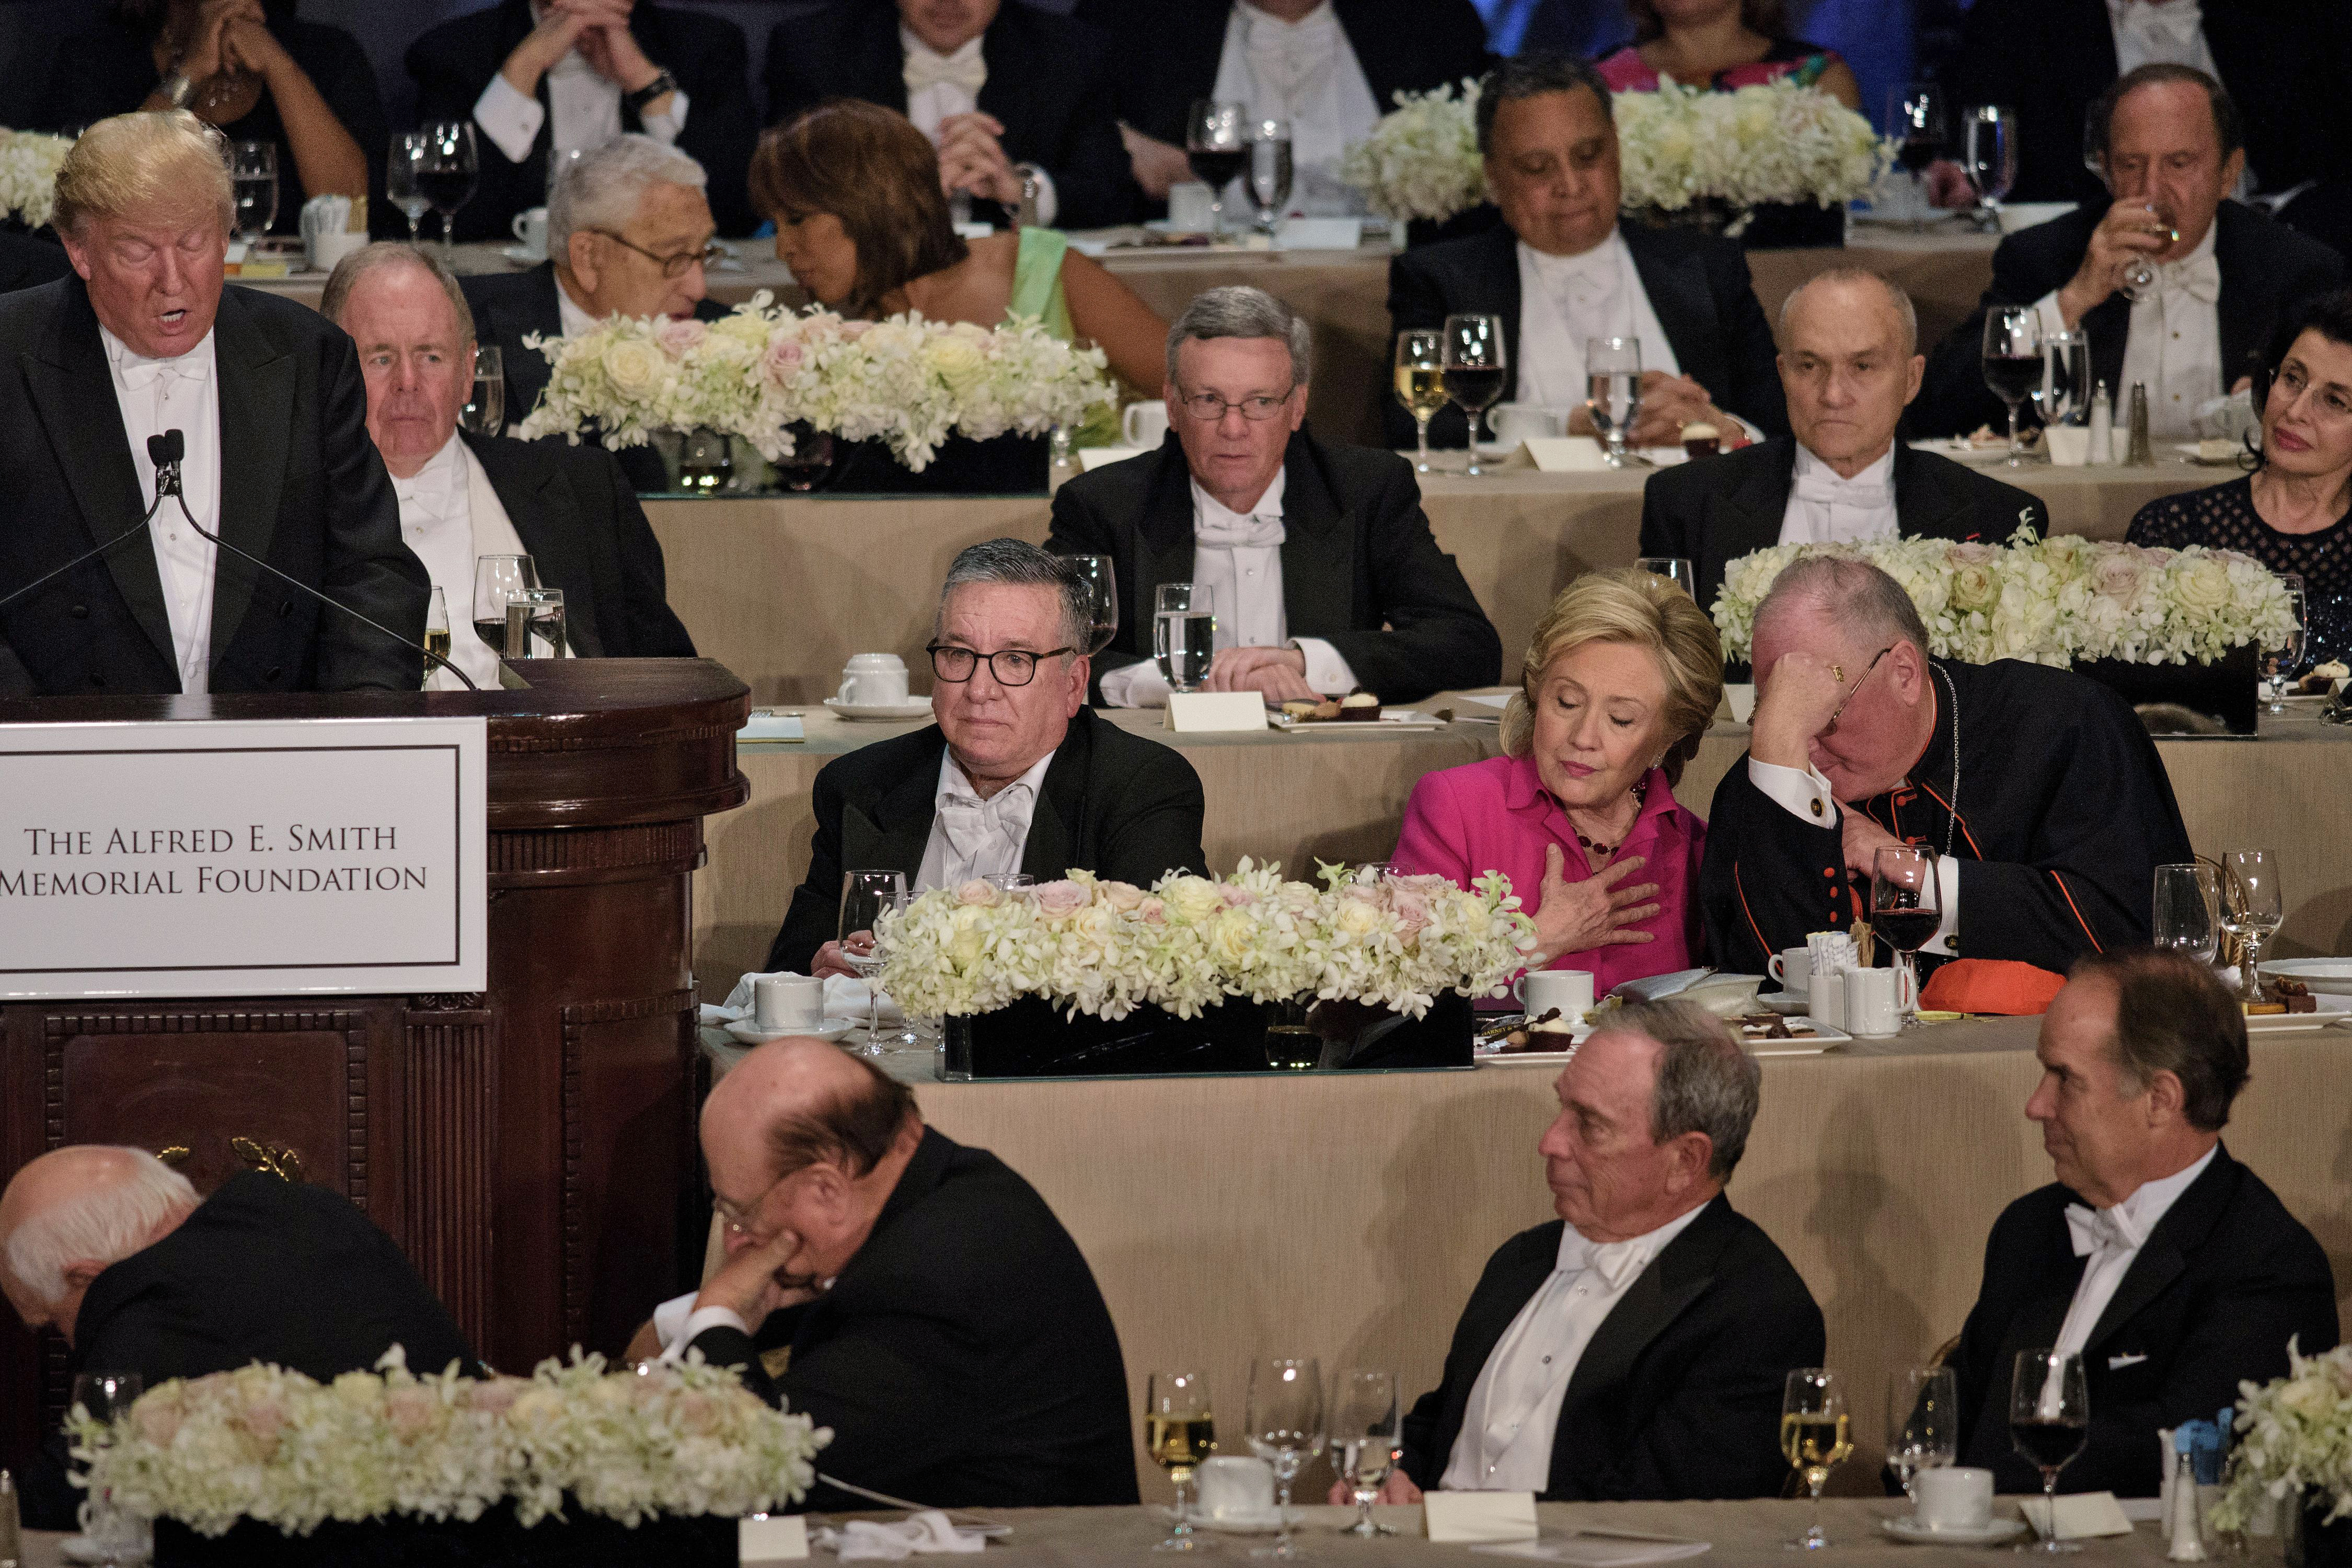 Hillary Clinton speaks with Timothy Cardinal Dolan, Archbishop of New York, as Republican presidential nominee Donald Trump speaks during the Alfred E. Smith Memorial Foundation Dinner at Waldorf Astoria in NYC, on Oct. 20, 2016. in New York, New York.